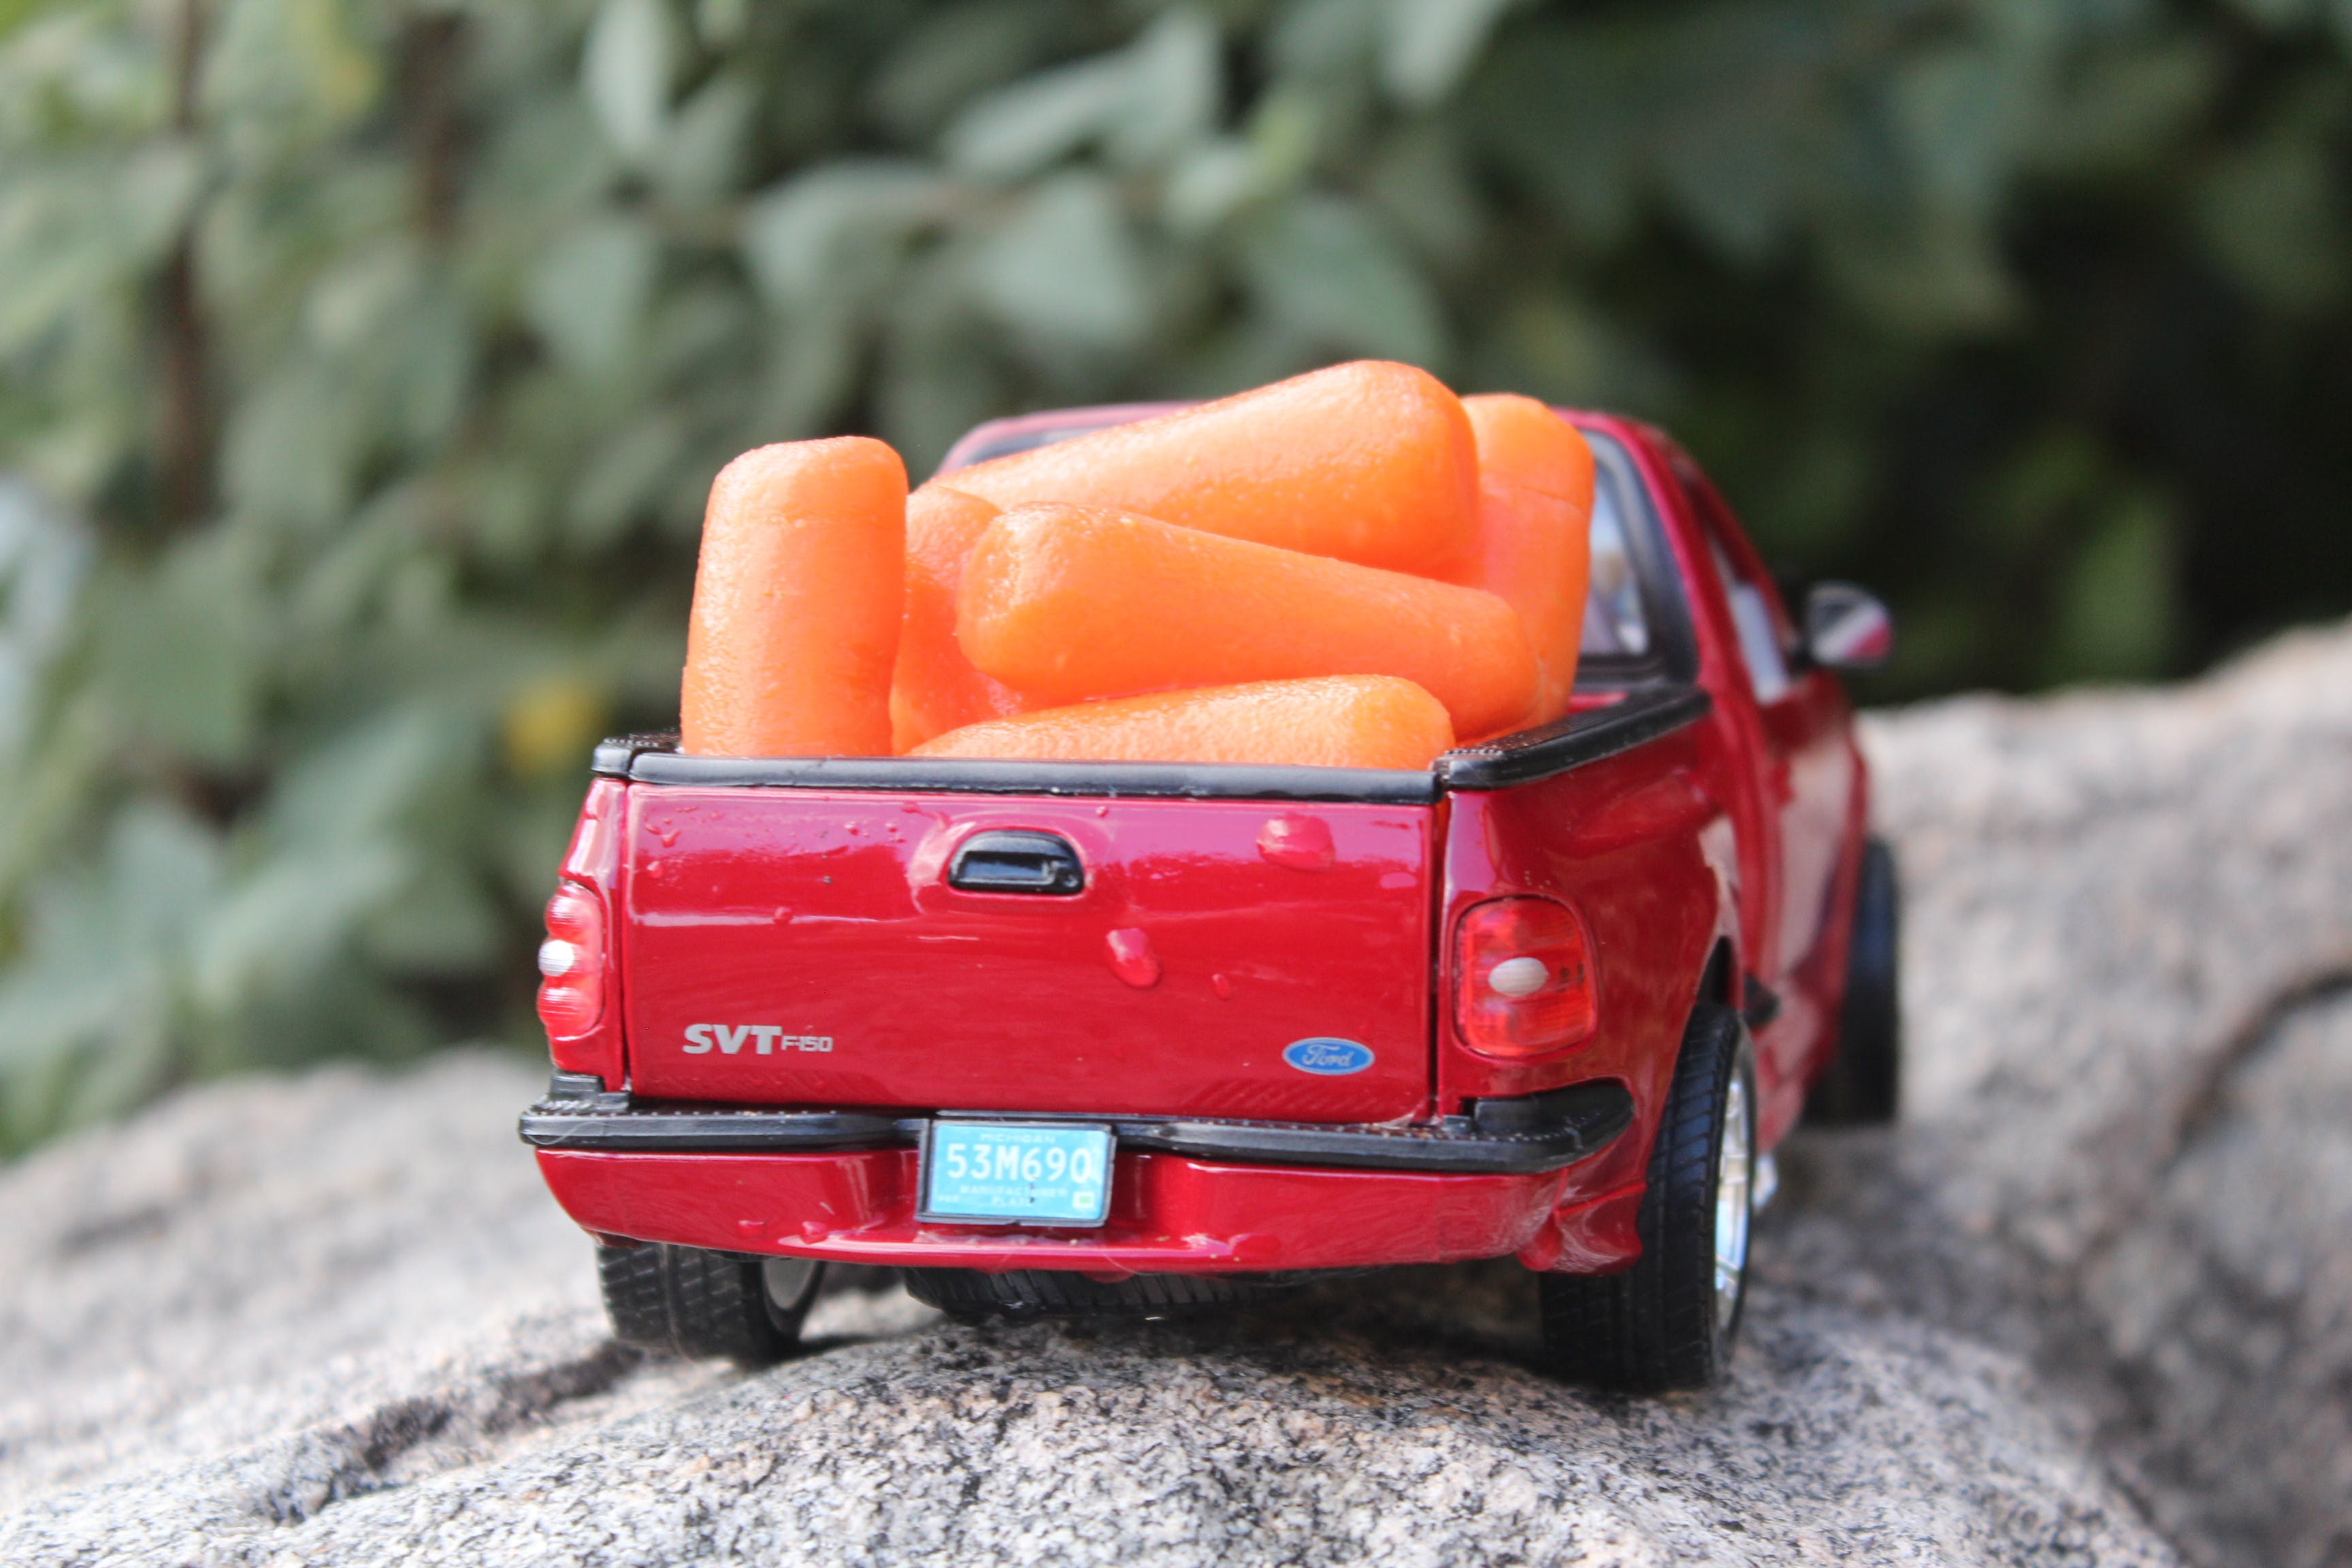 Free stock photo of Baby carrots, carrots, red pick up, red truck